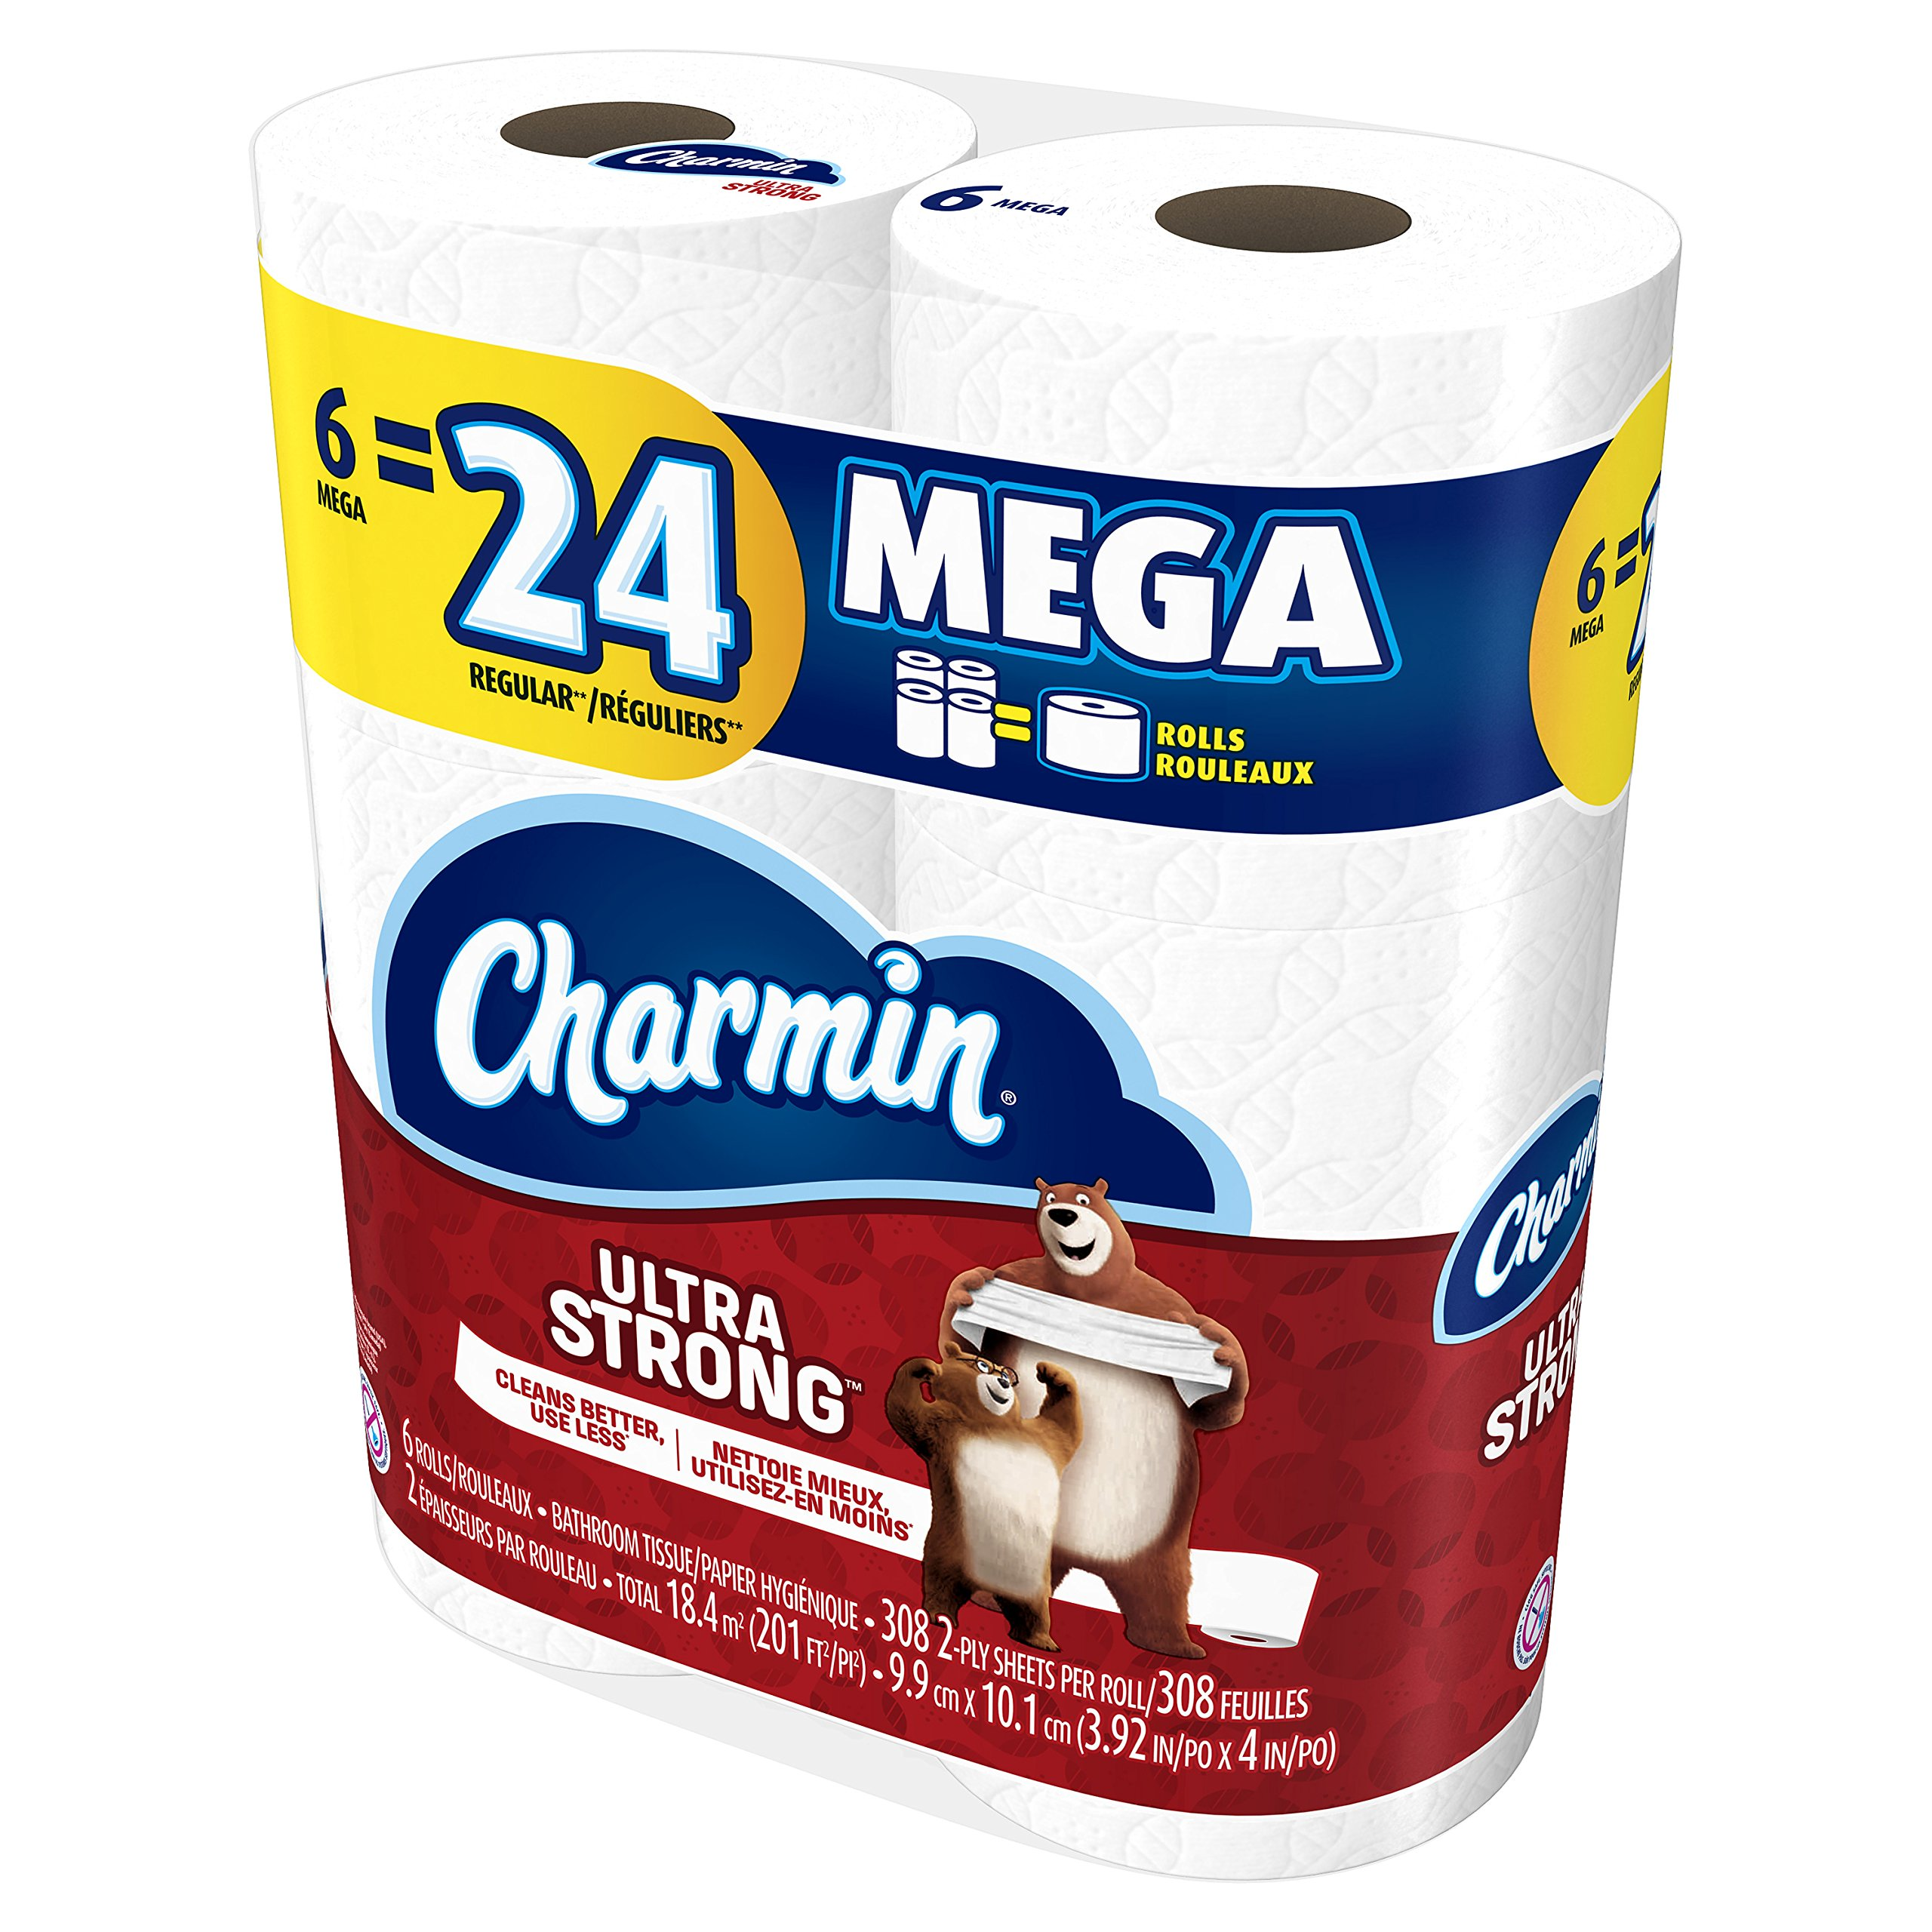 Galleon Charmin Ultra Strong Toilet Paper Mega Roll 24